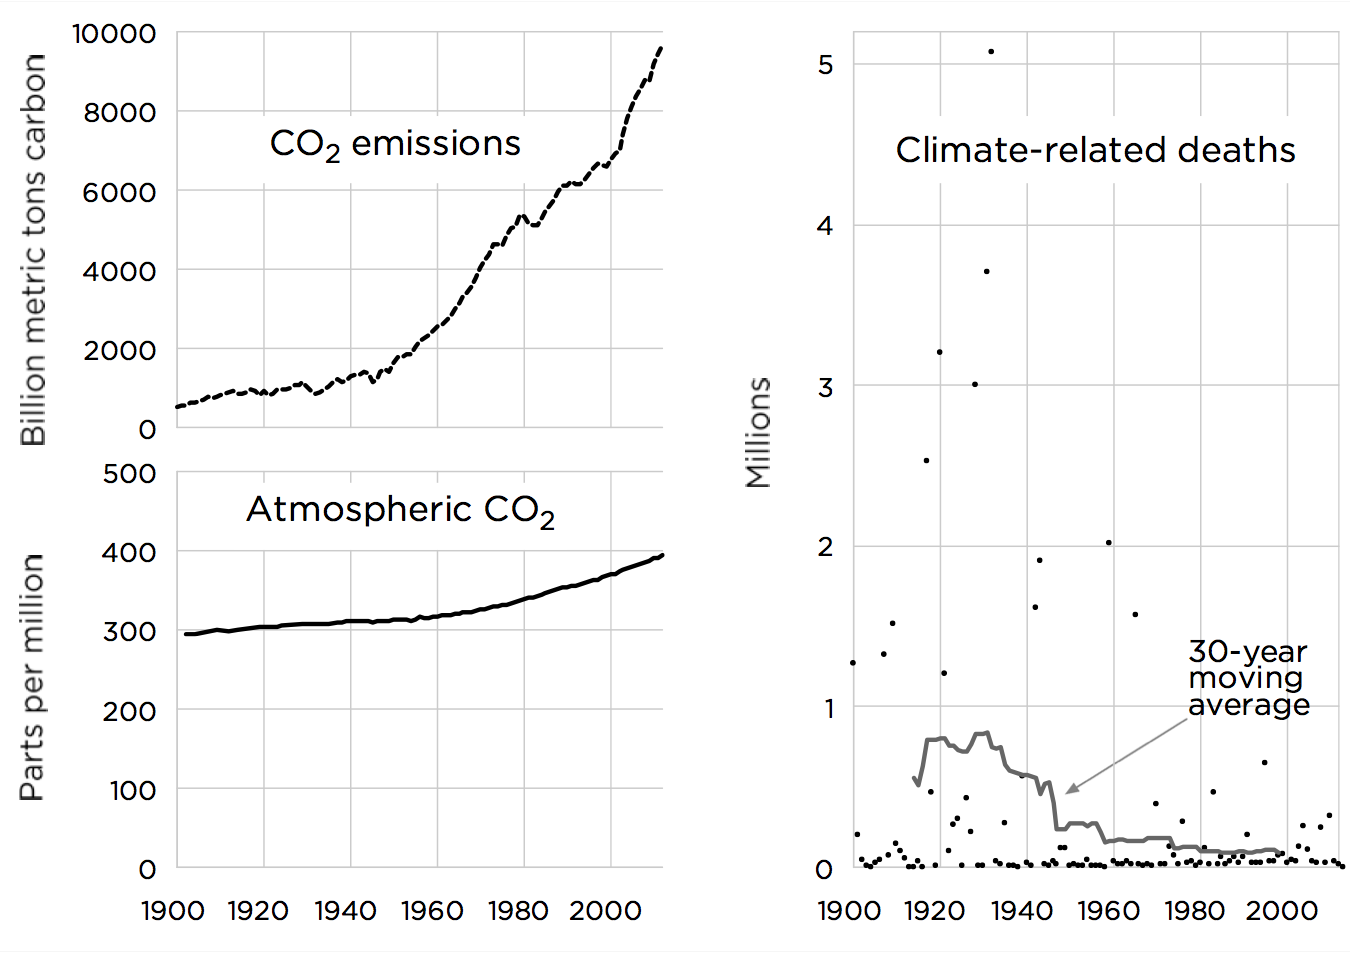 Sources: Boden, Marland, Andres (2013); Etheridge et al. (1998); Keeling et al. (2001); MacFarling Meure et al. (2006); Merged IceCore Record Data, Scripps Institution of Oceanography; EM-DAT International Disaster Database